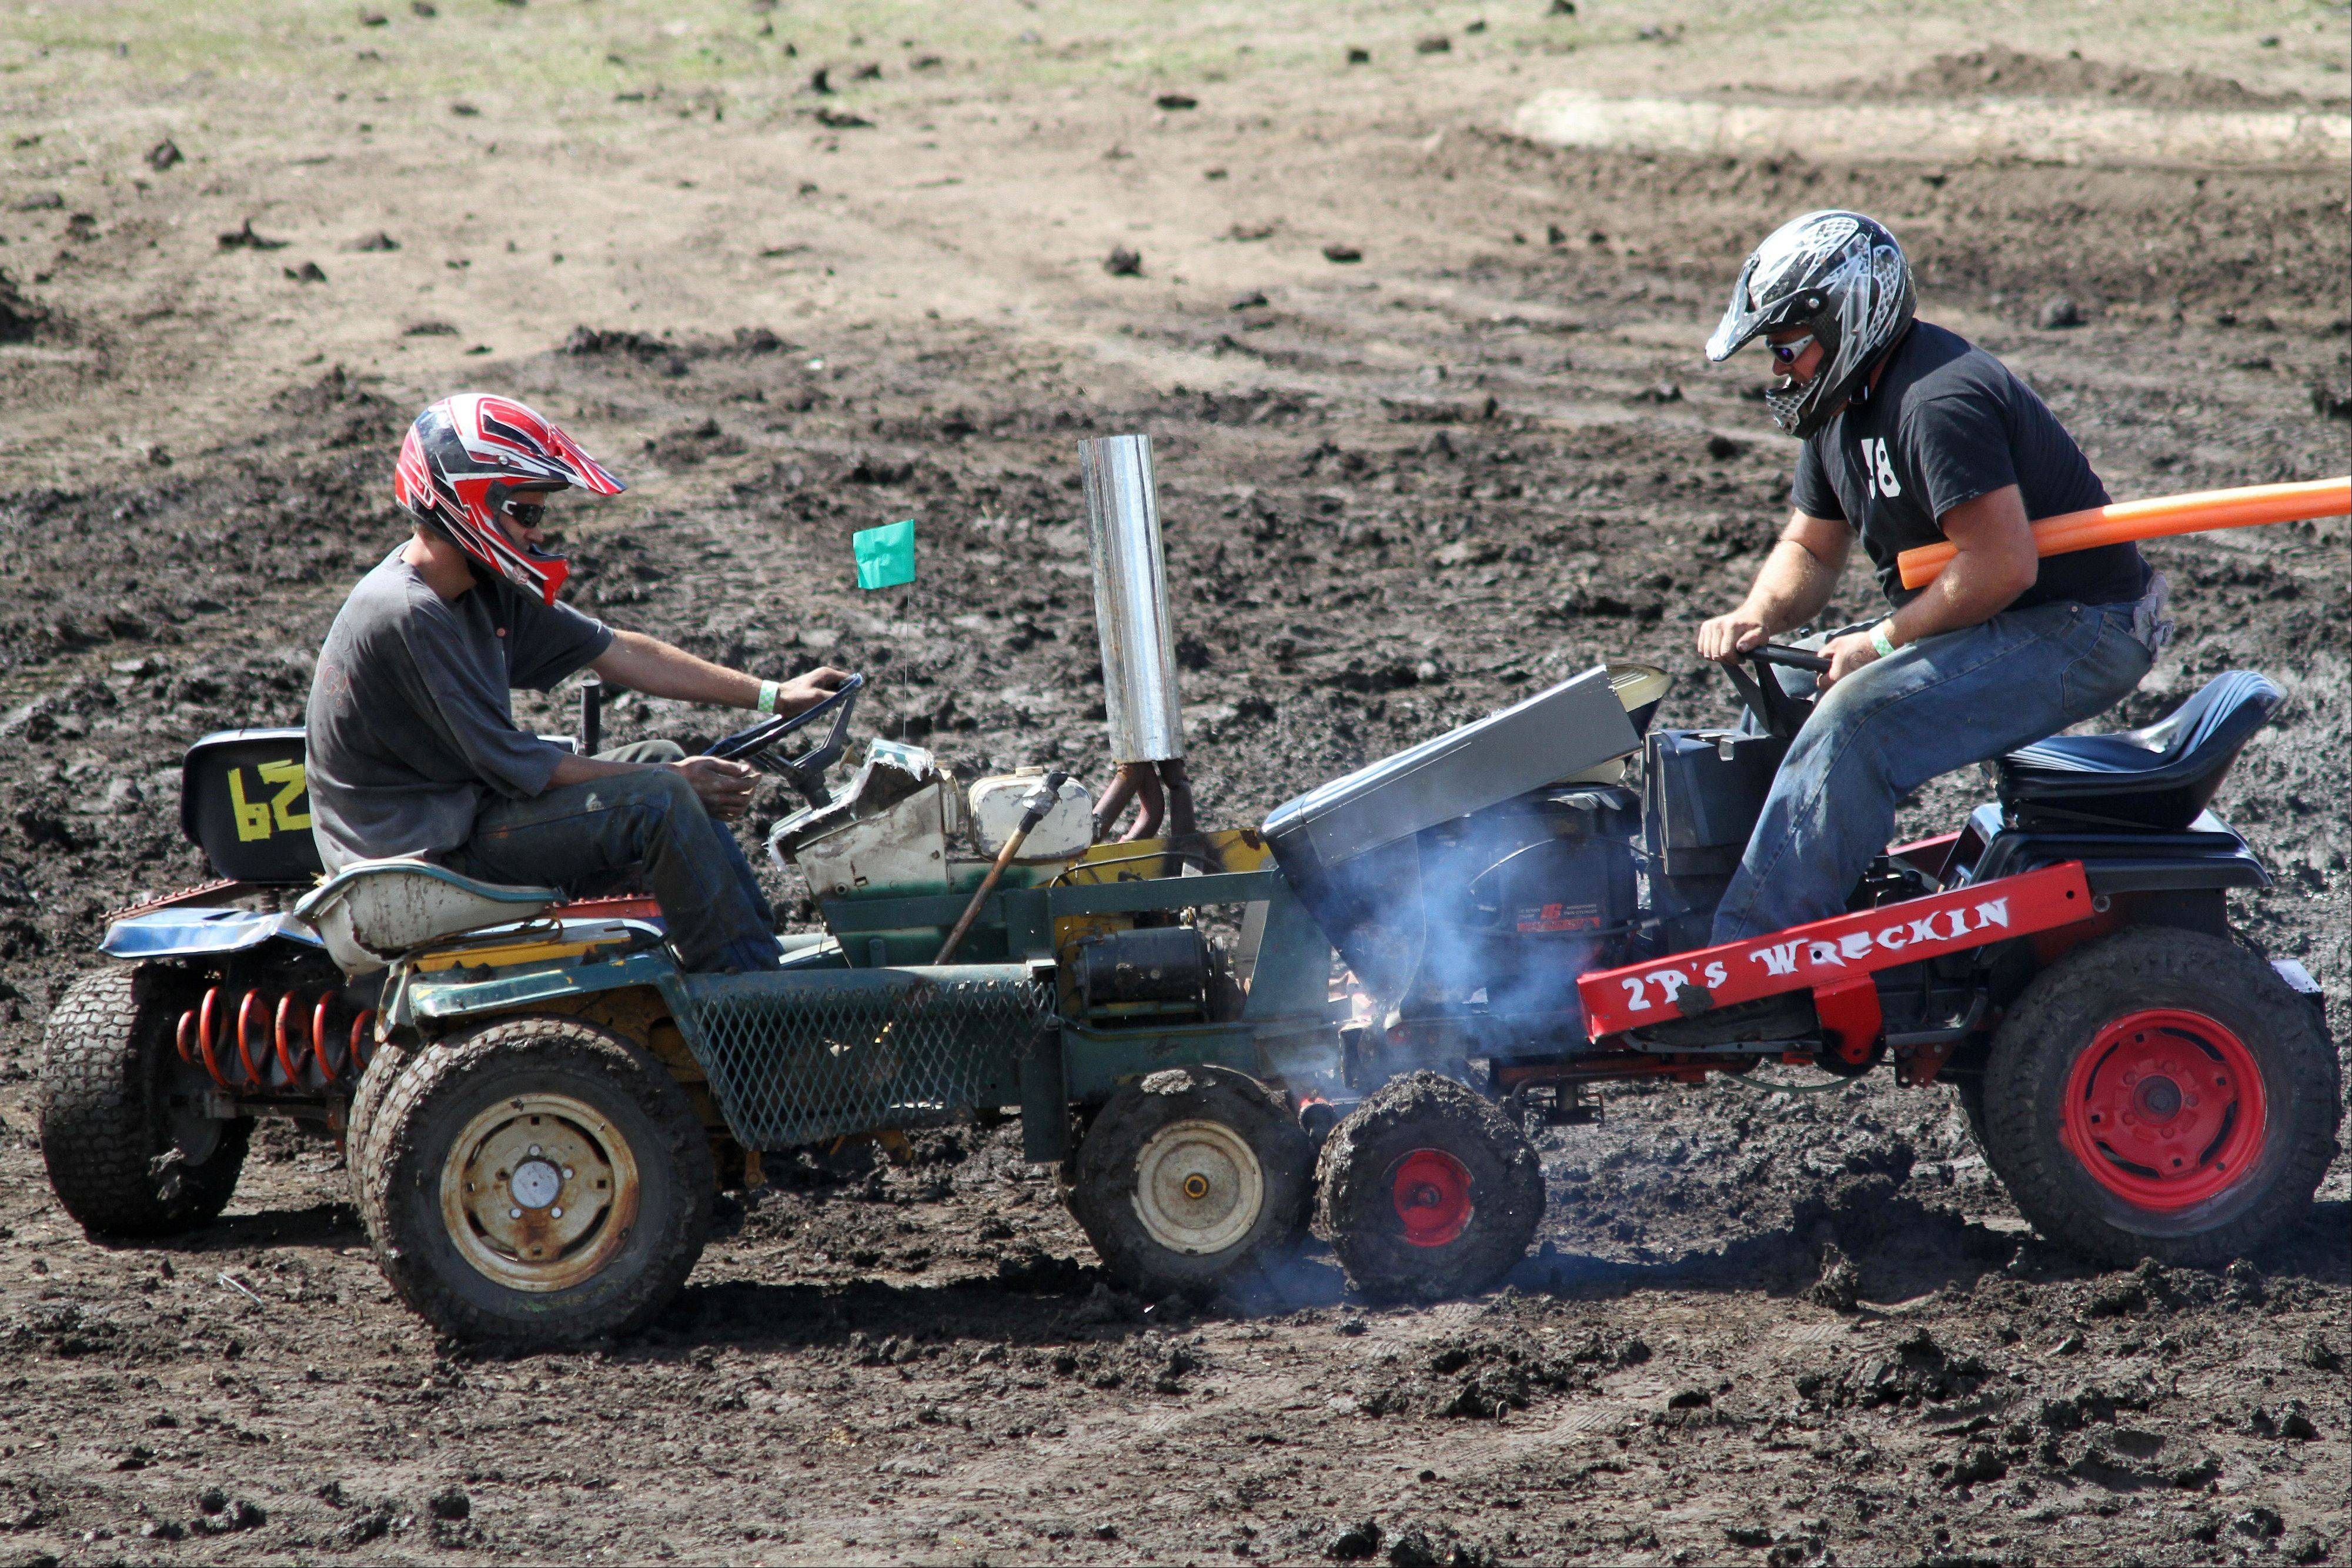 Cody Lang (left) and Brian Elingsworth collide in the lawn mower heat of the demolition derby at the 2013 DuPage County Fair on Sunday, July 28, 2013. The lawn mower heat was a new addition.